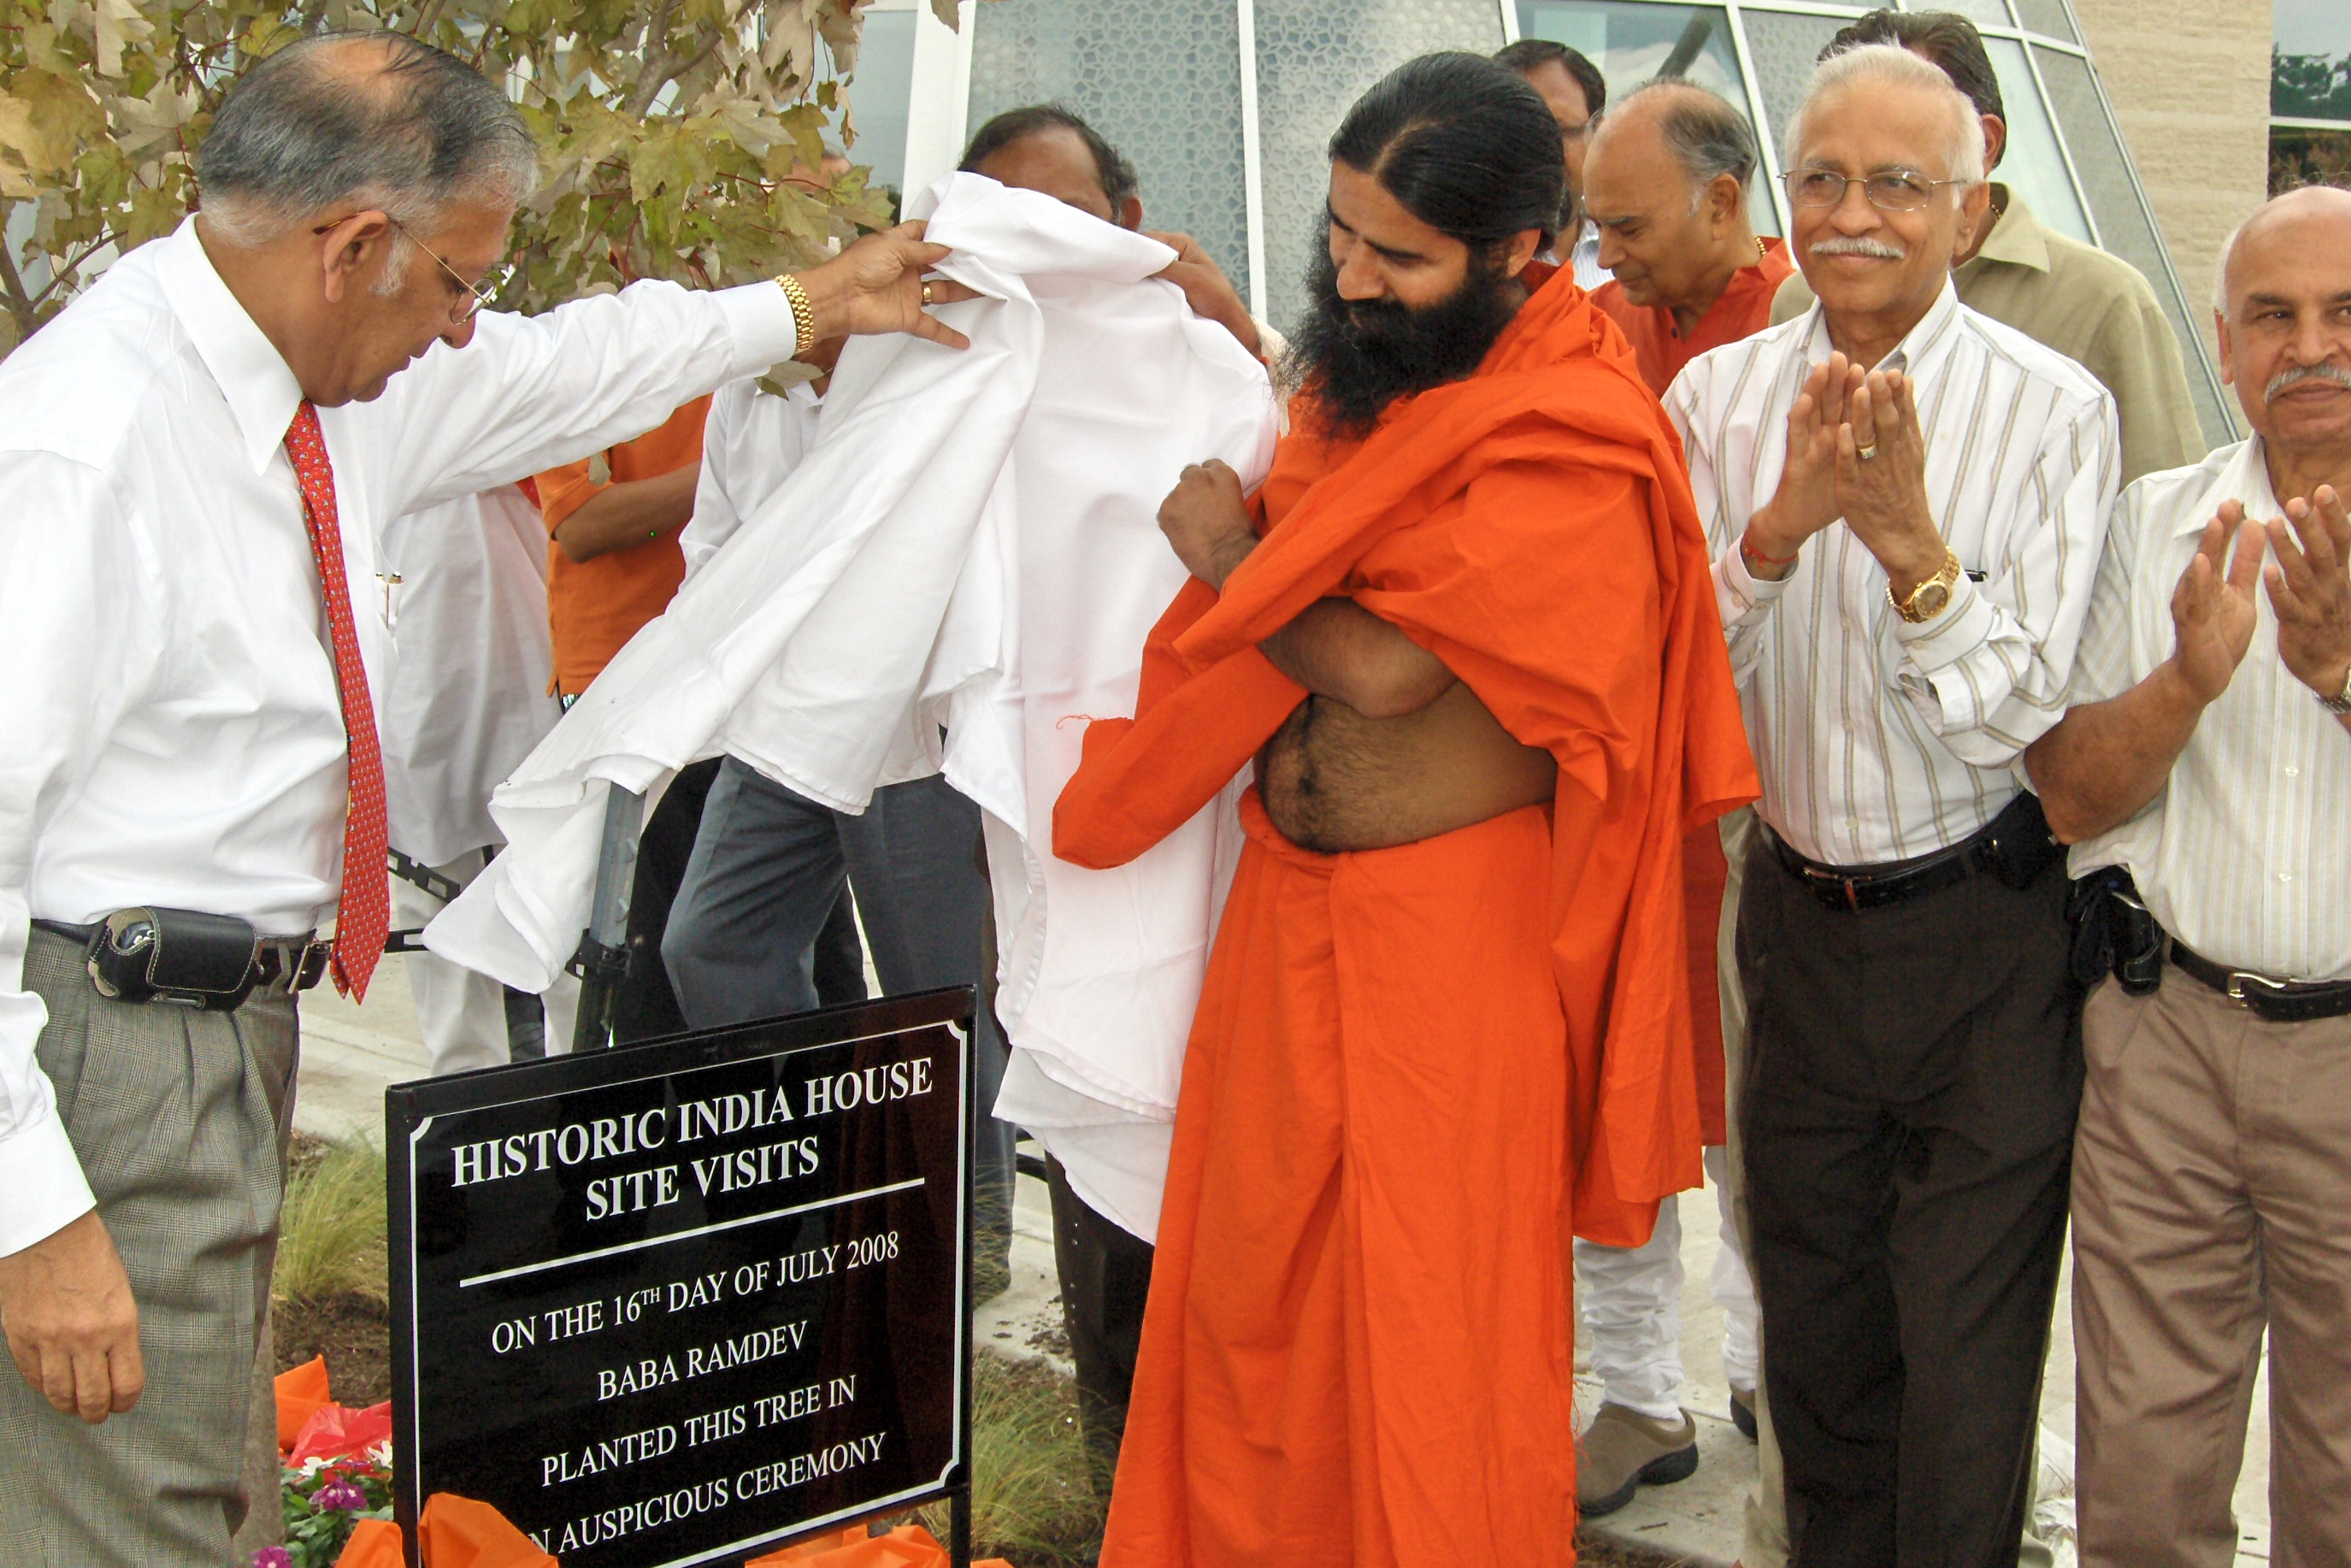 Baba Ramdev visited India House Facility  - India House Houston